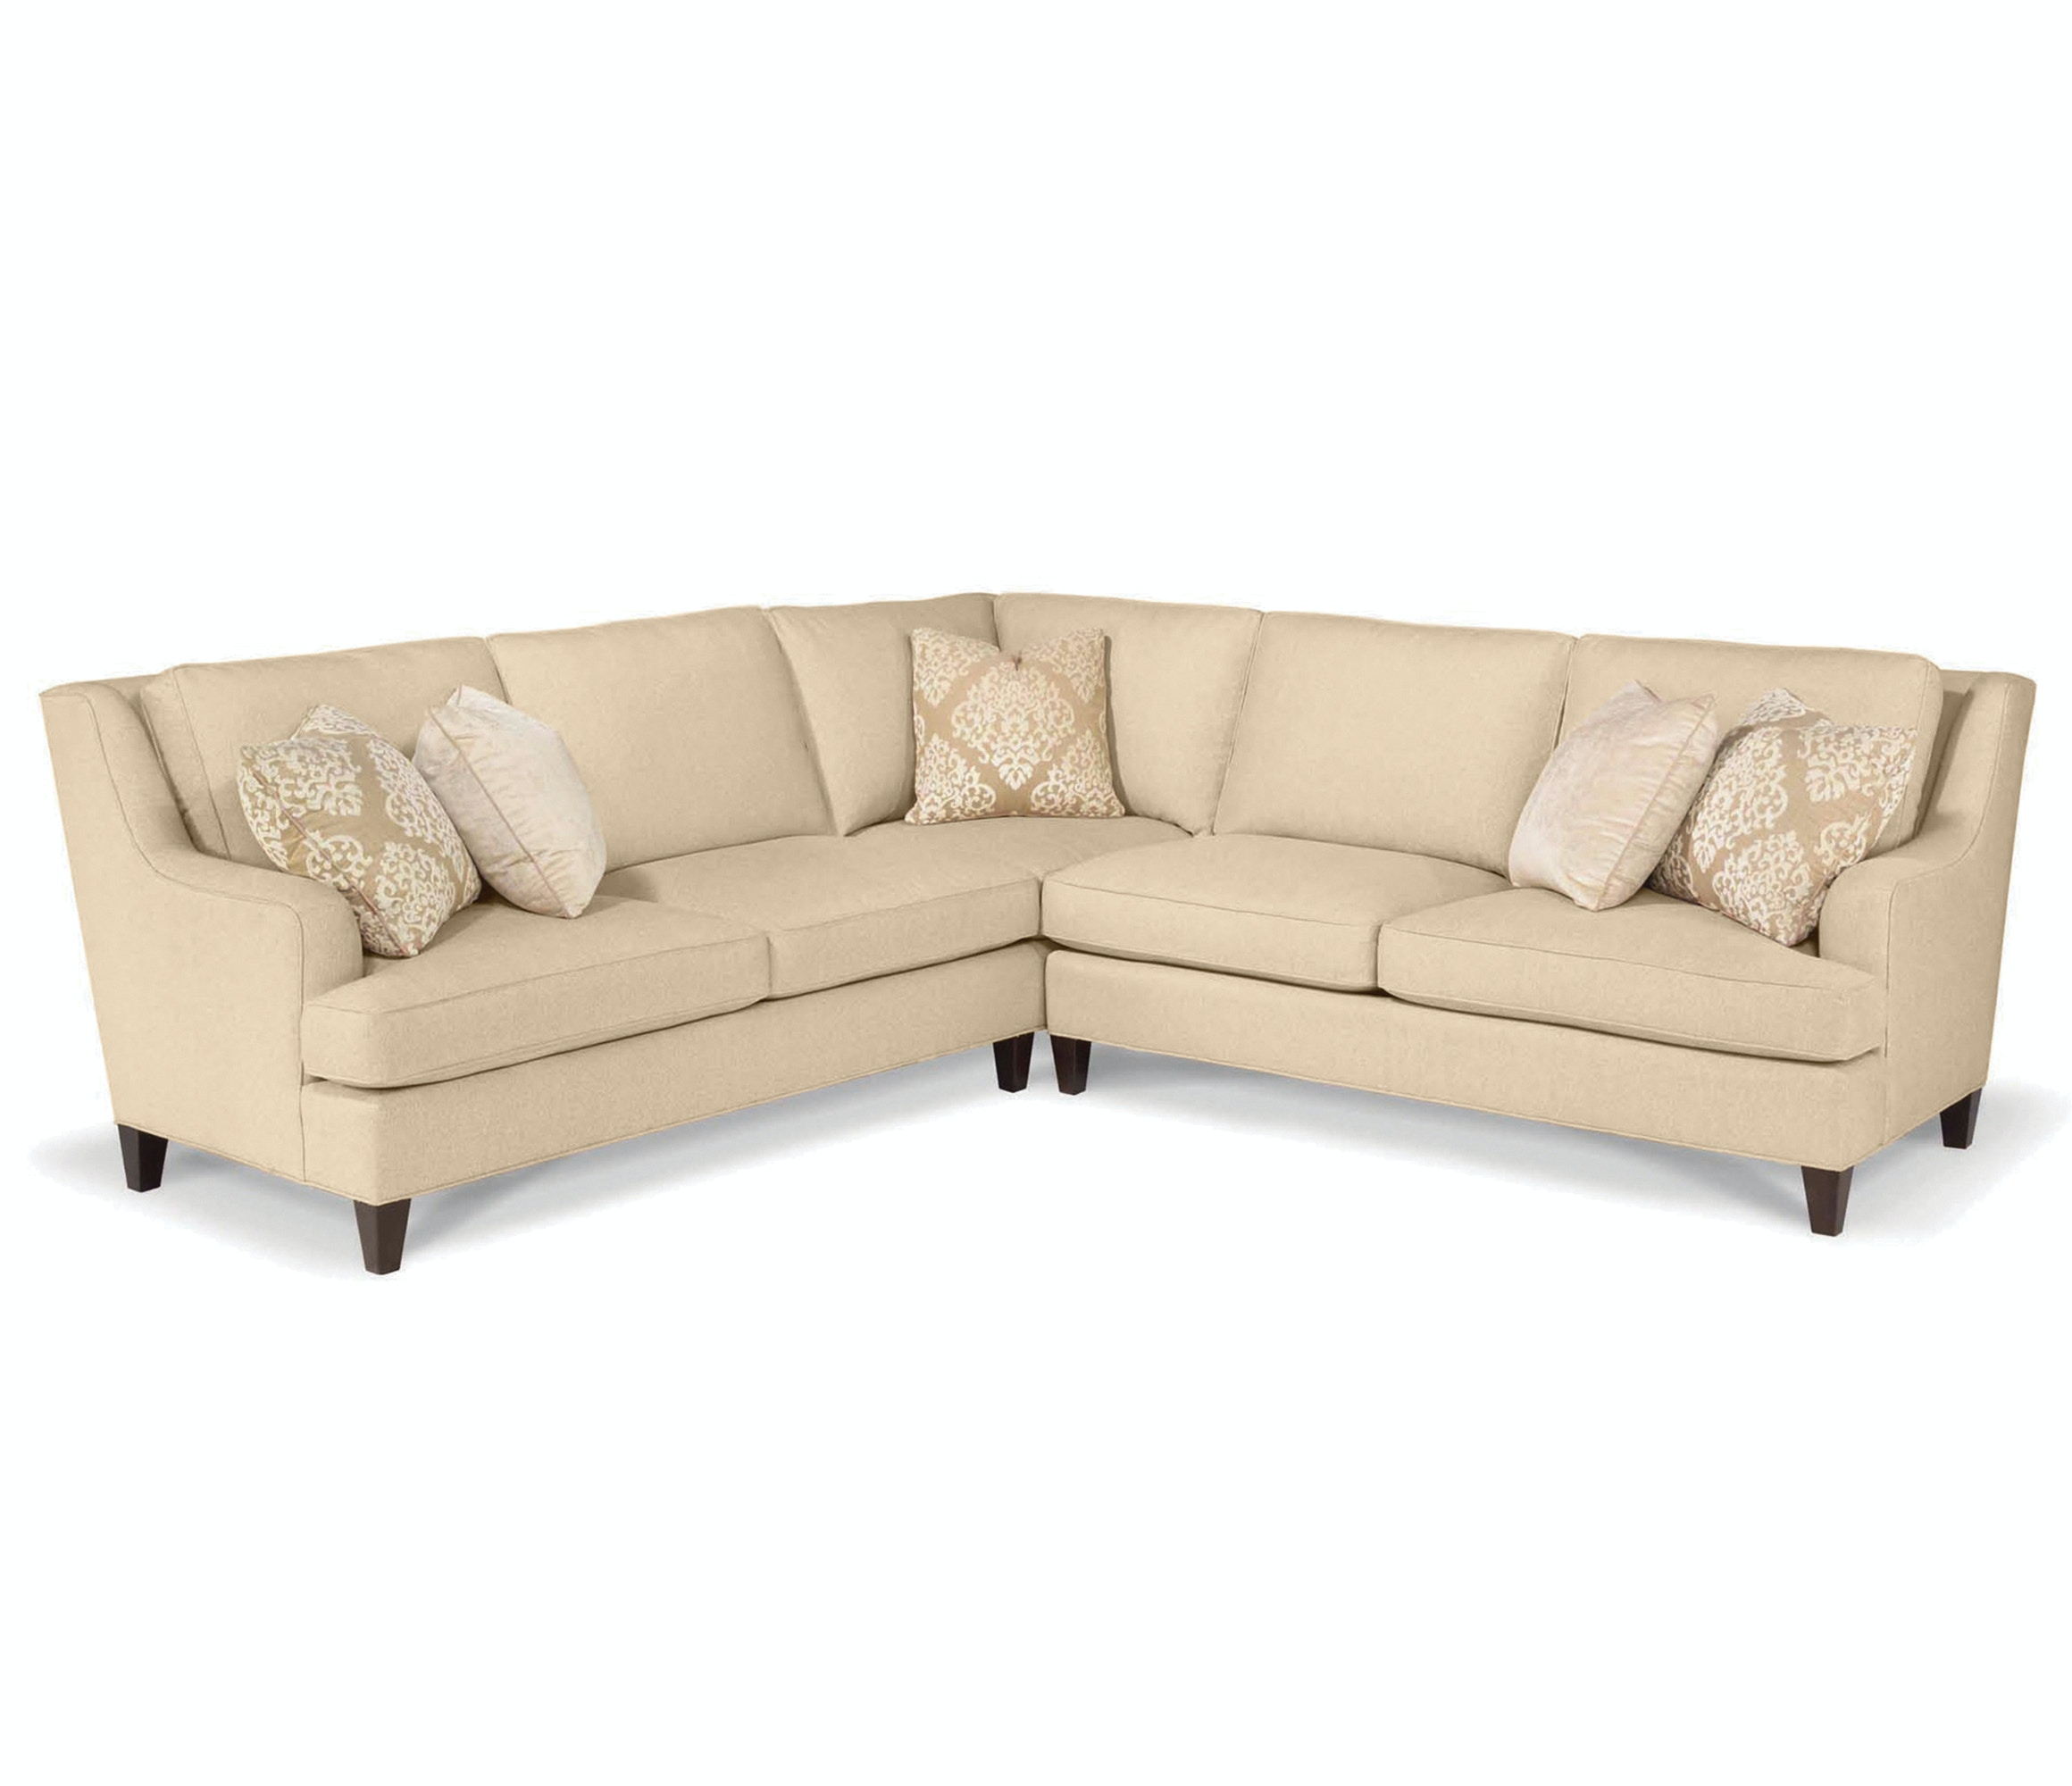 Taylor King Furniture Living Room Talulah Sectional 1037